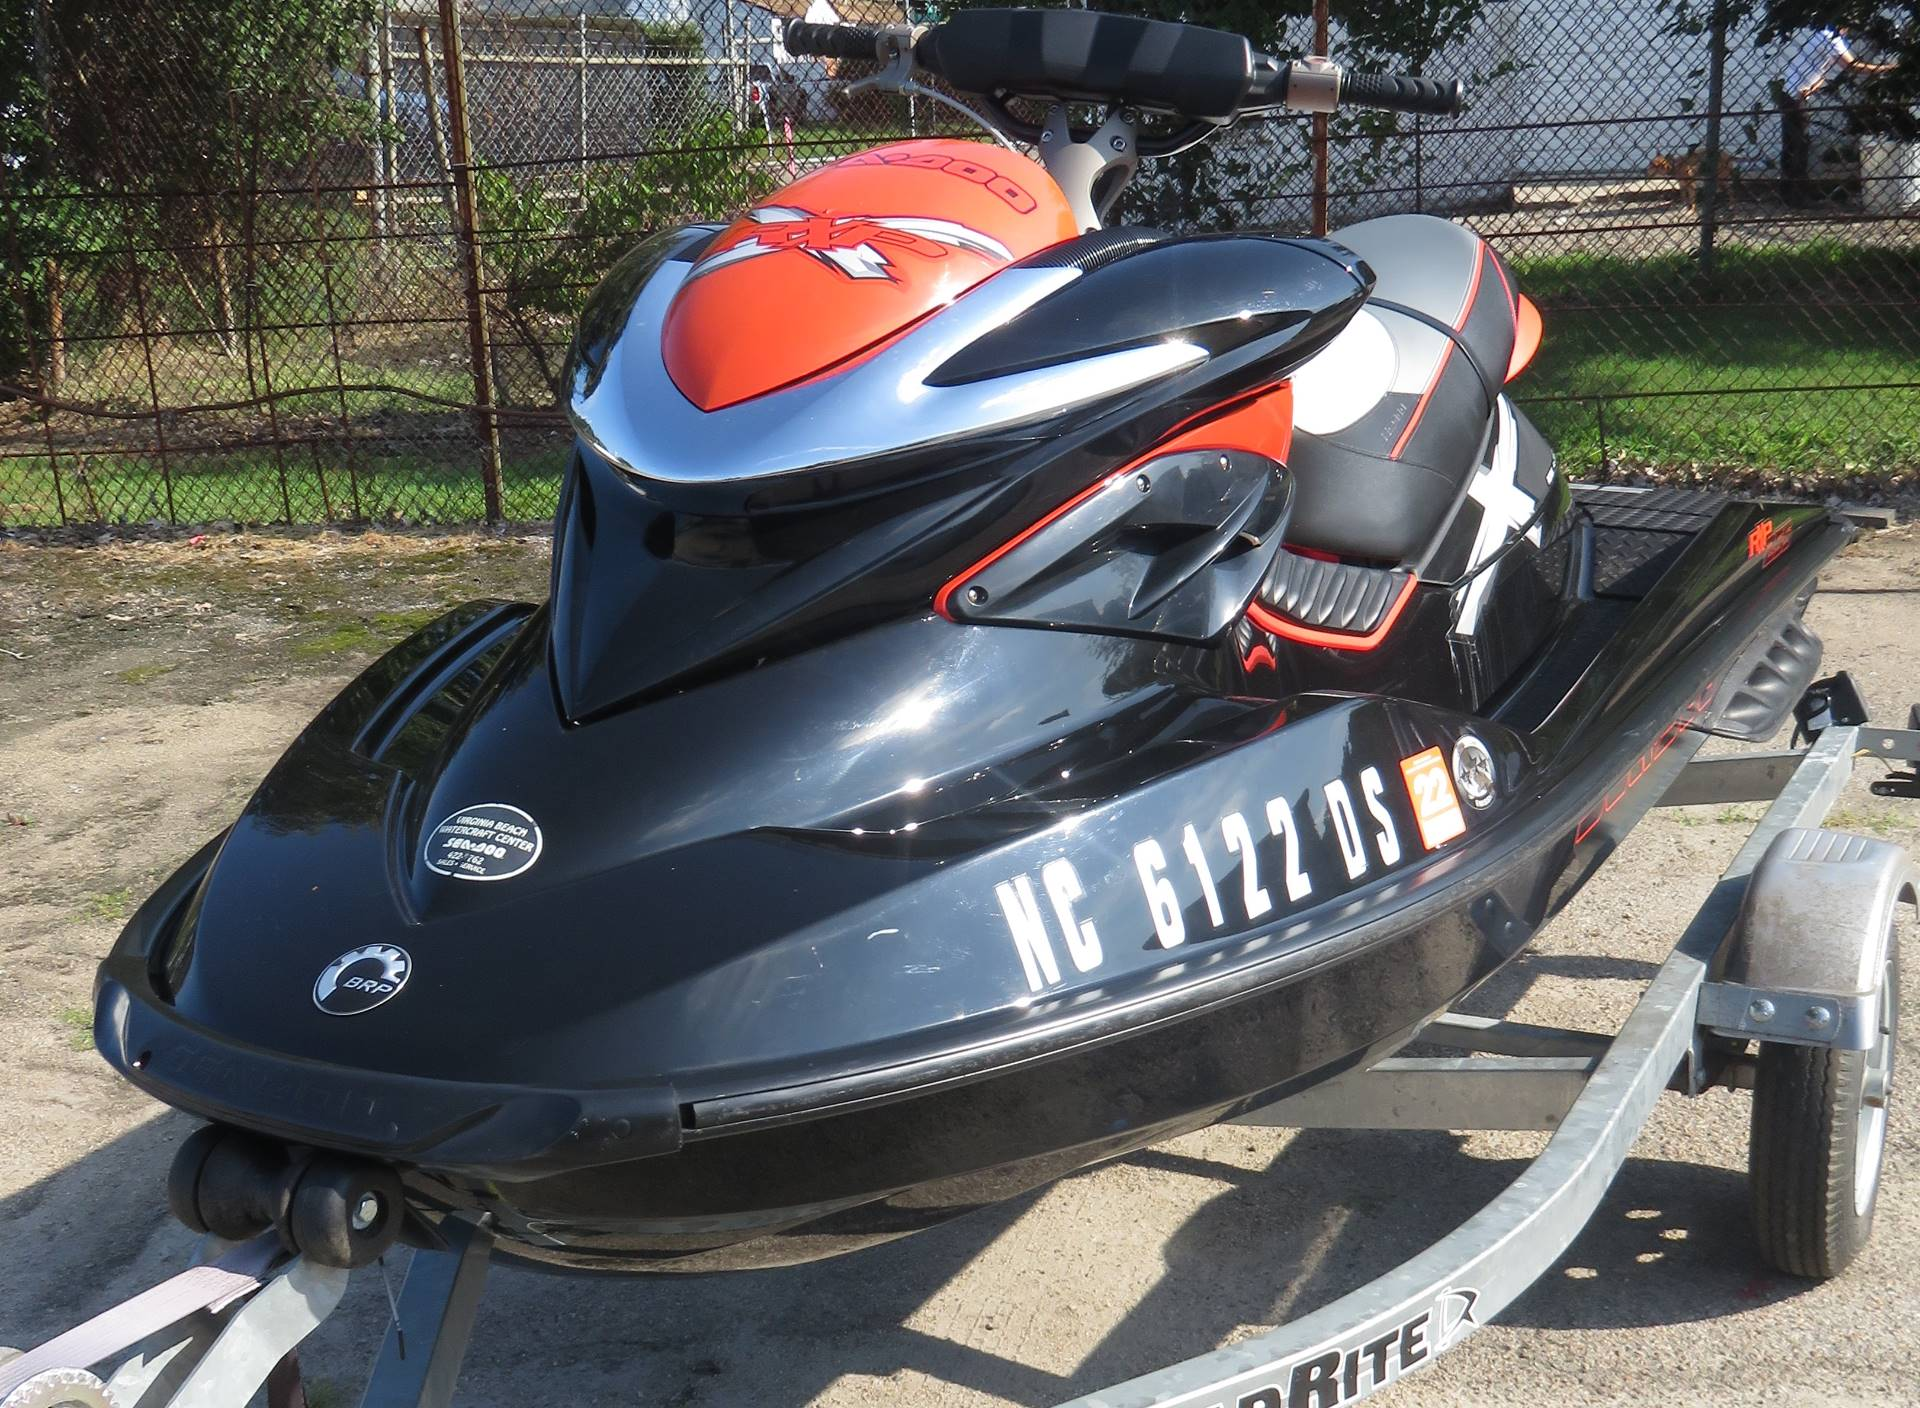 2011 Sea-Doo RXP®-X™ 255 in Virginia Beach, Virginia - Photo 1